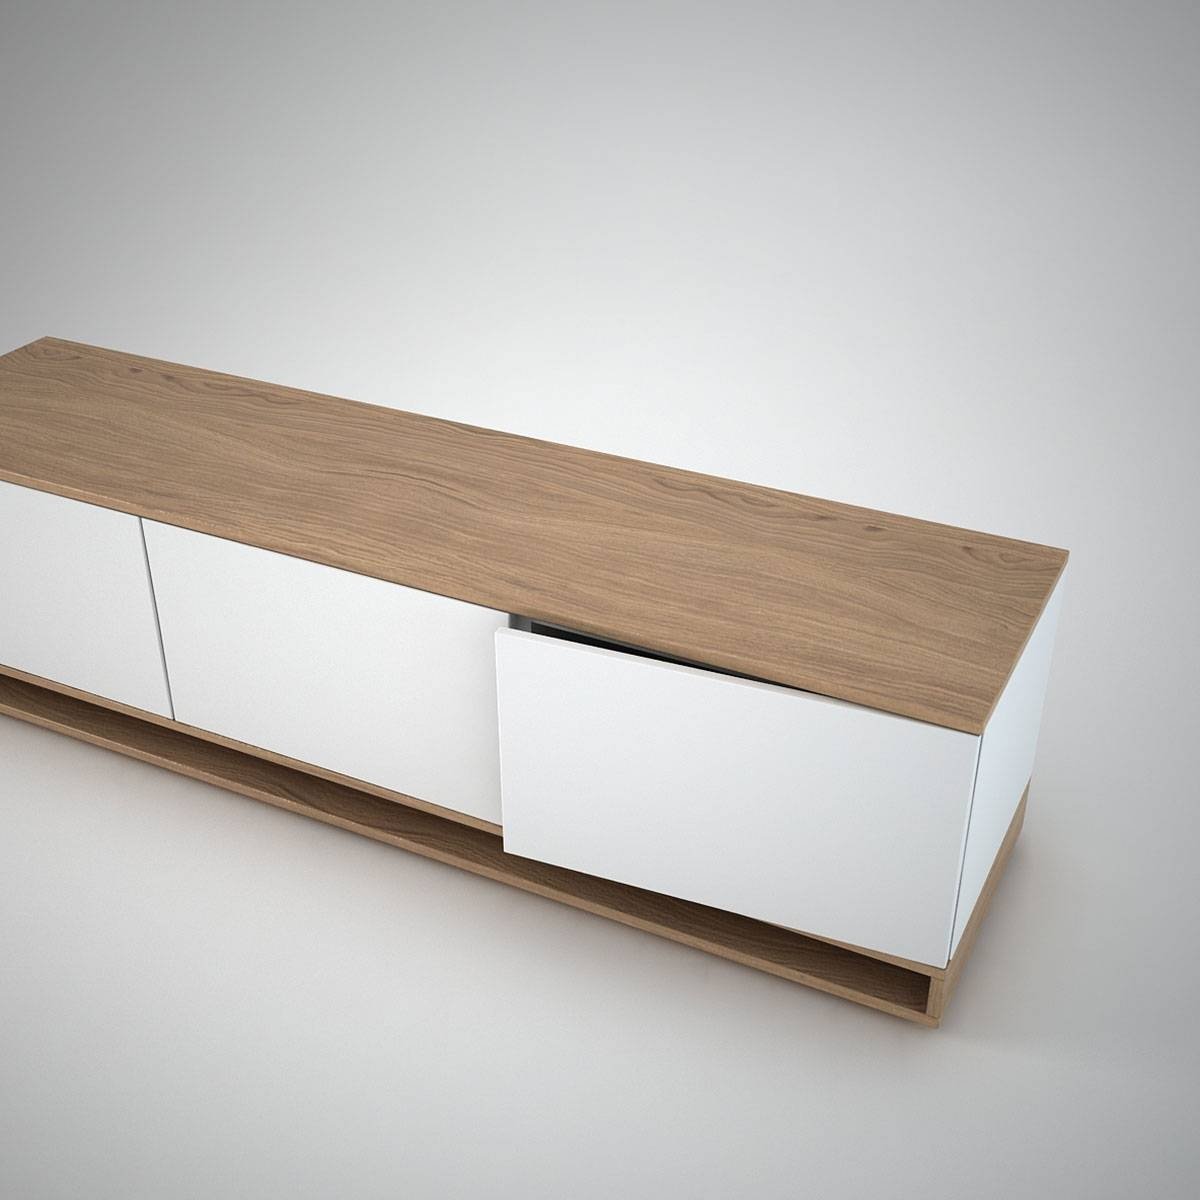 Harlem Low Sideboard (3) White - Join Furniture intended for White and Wood Sideboards (Image 9 of 30)